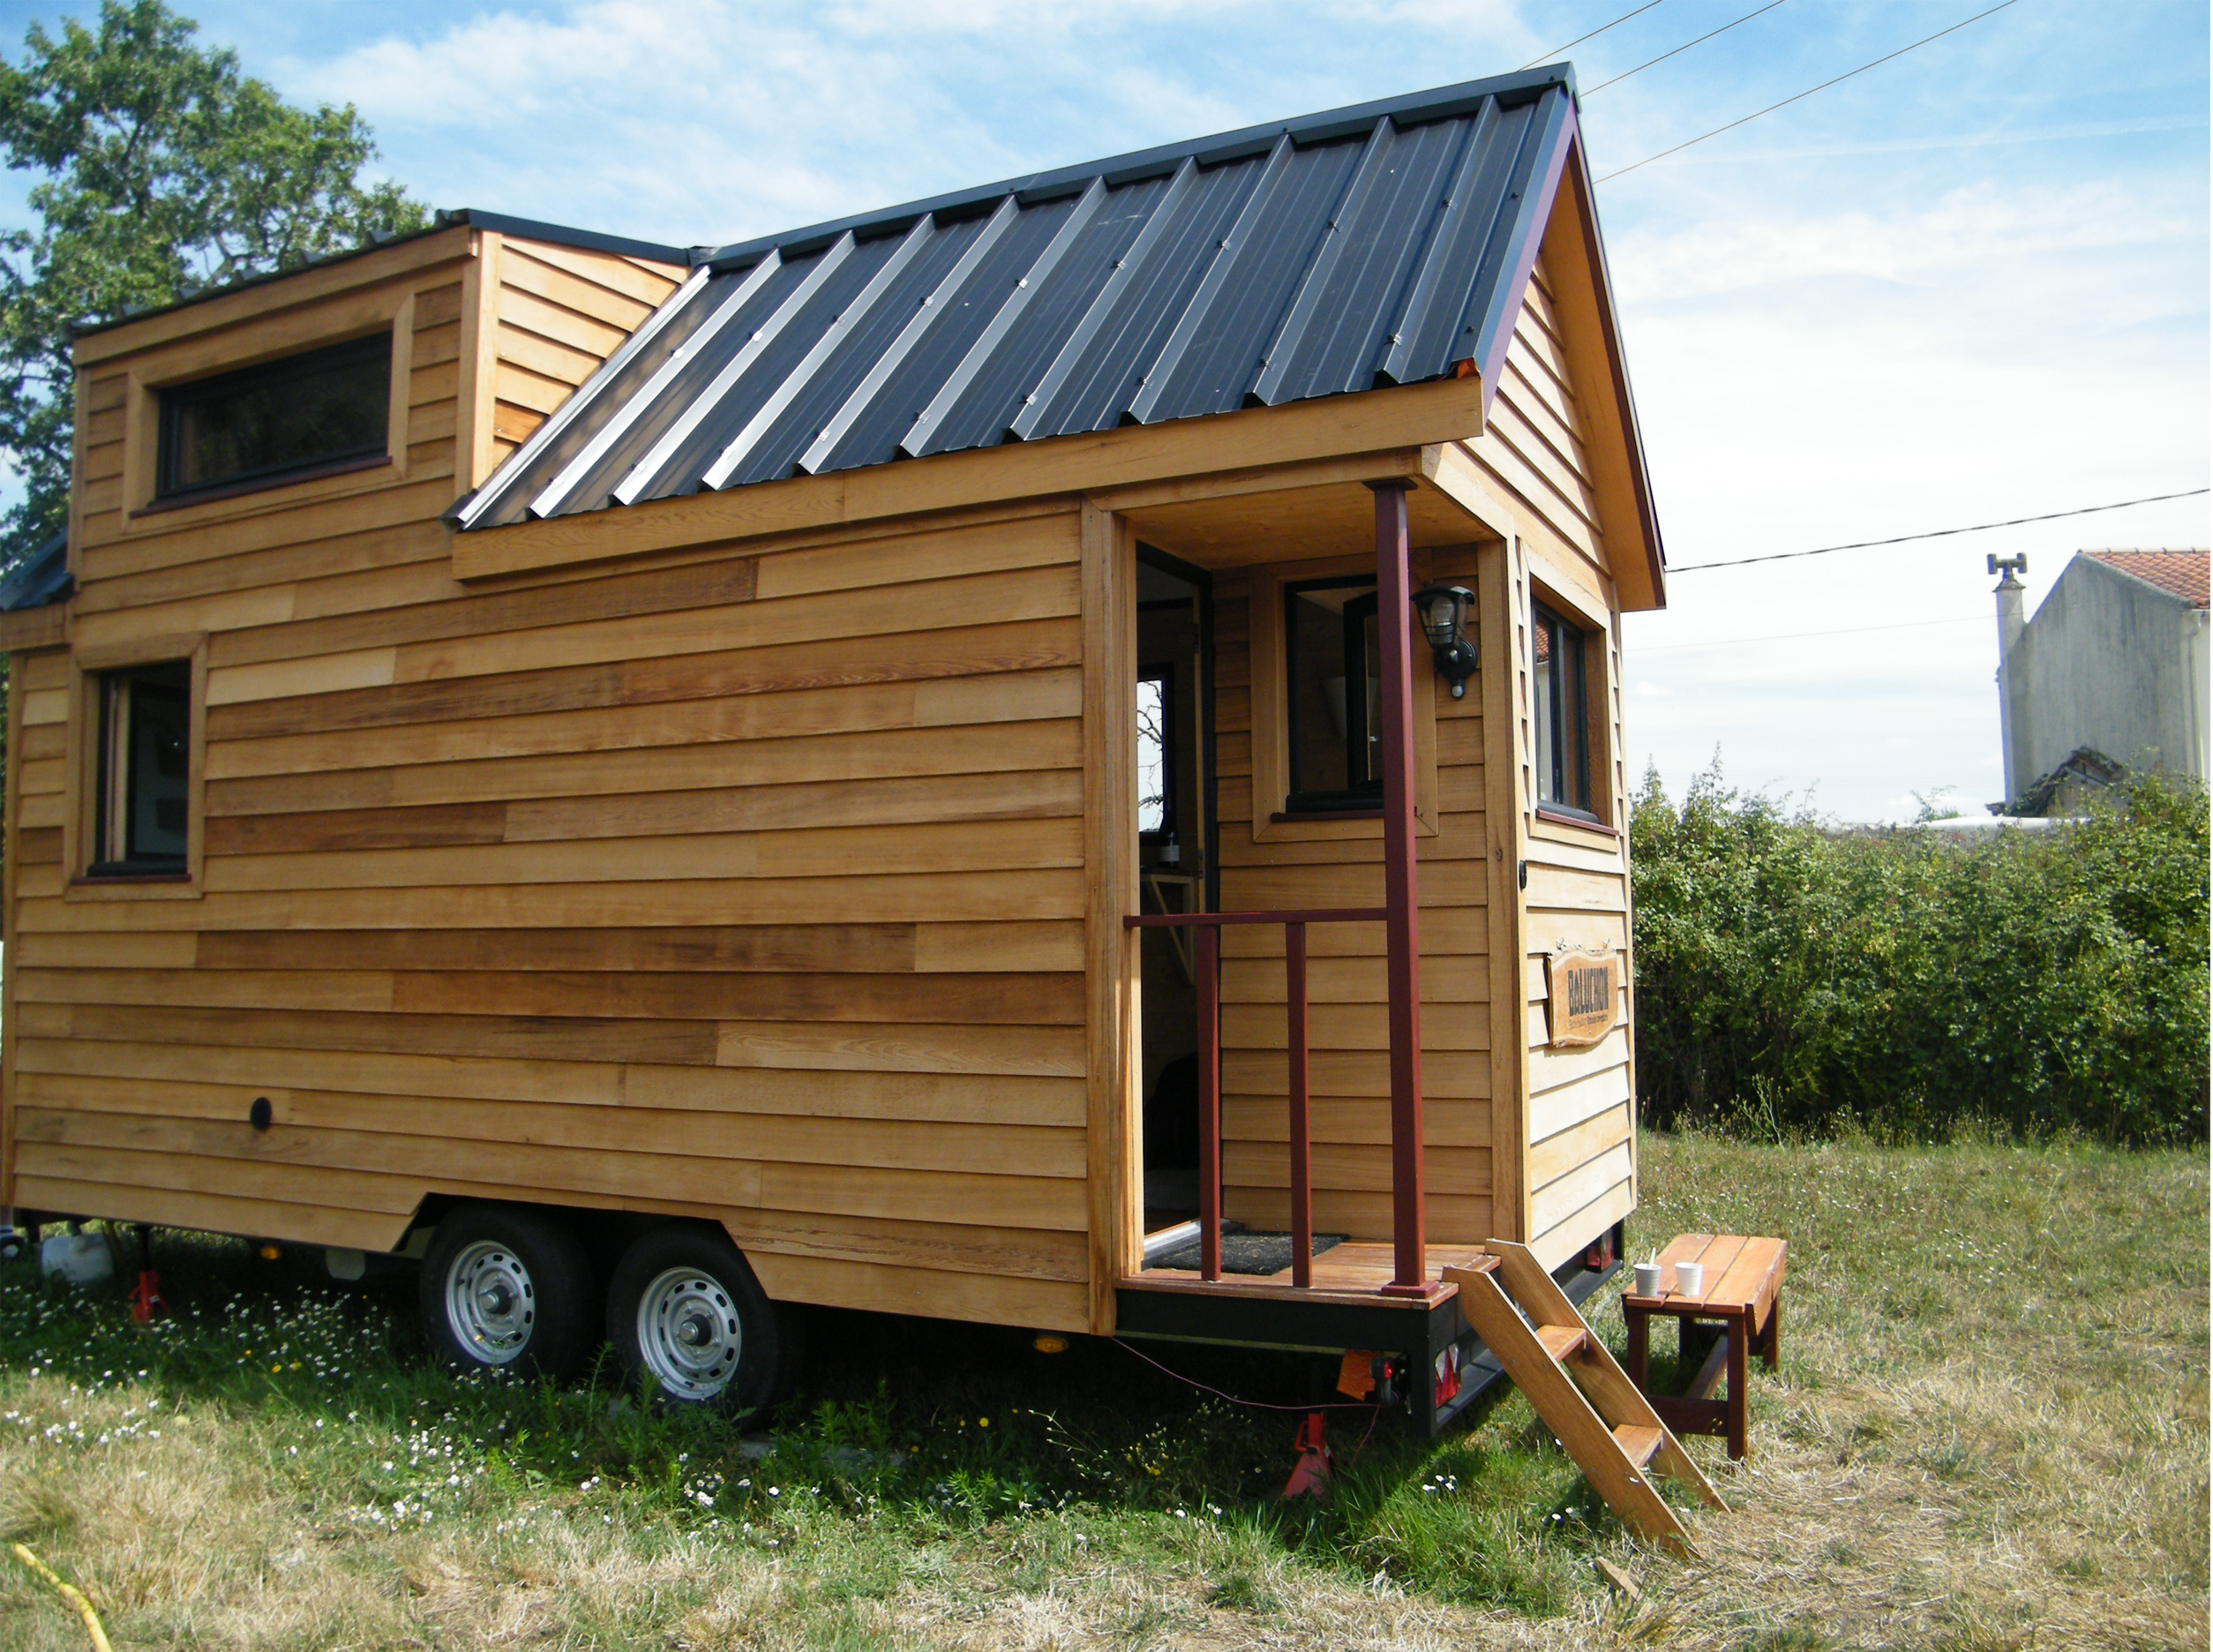 une tiny house la fran aise nomm e baluchon 1 re partie tiny house. Black Bedroom Furniture Sets. Home Design Ideas